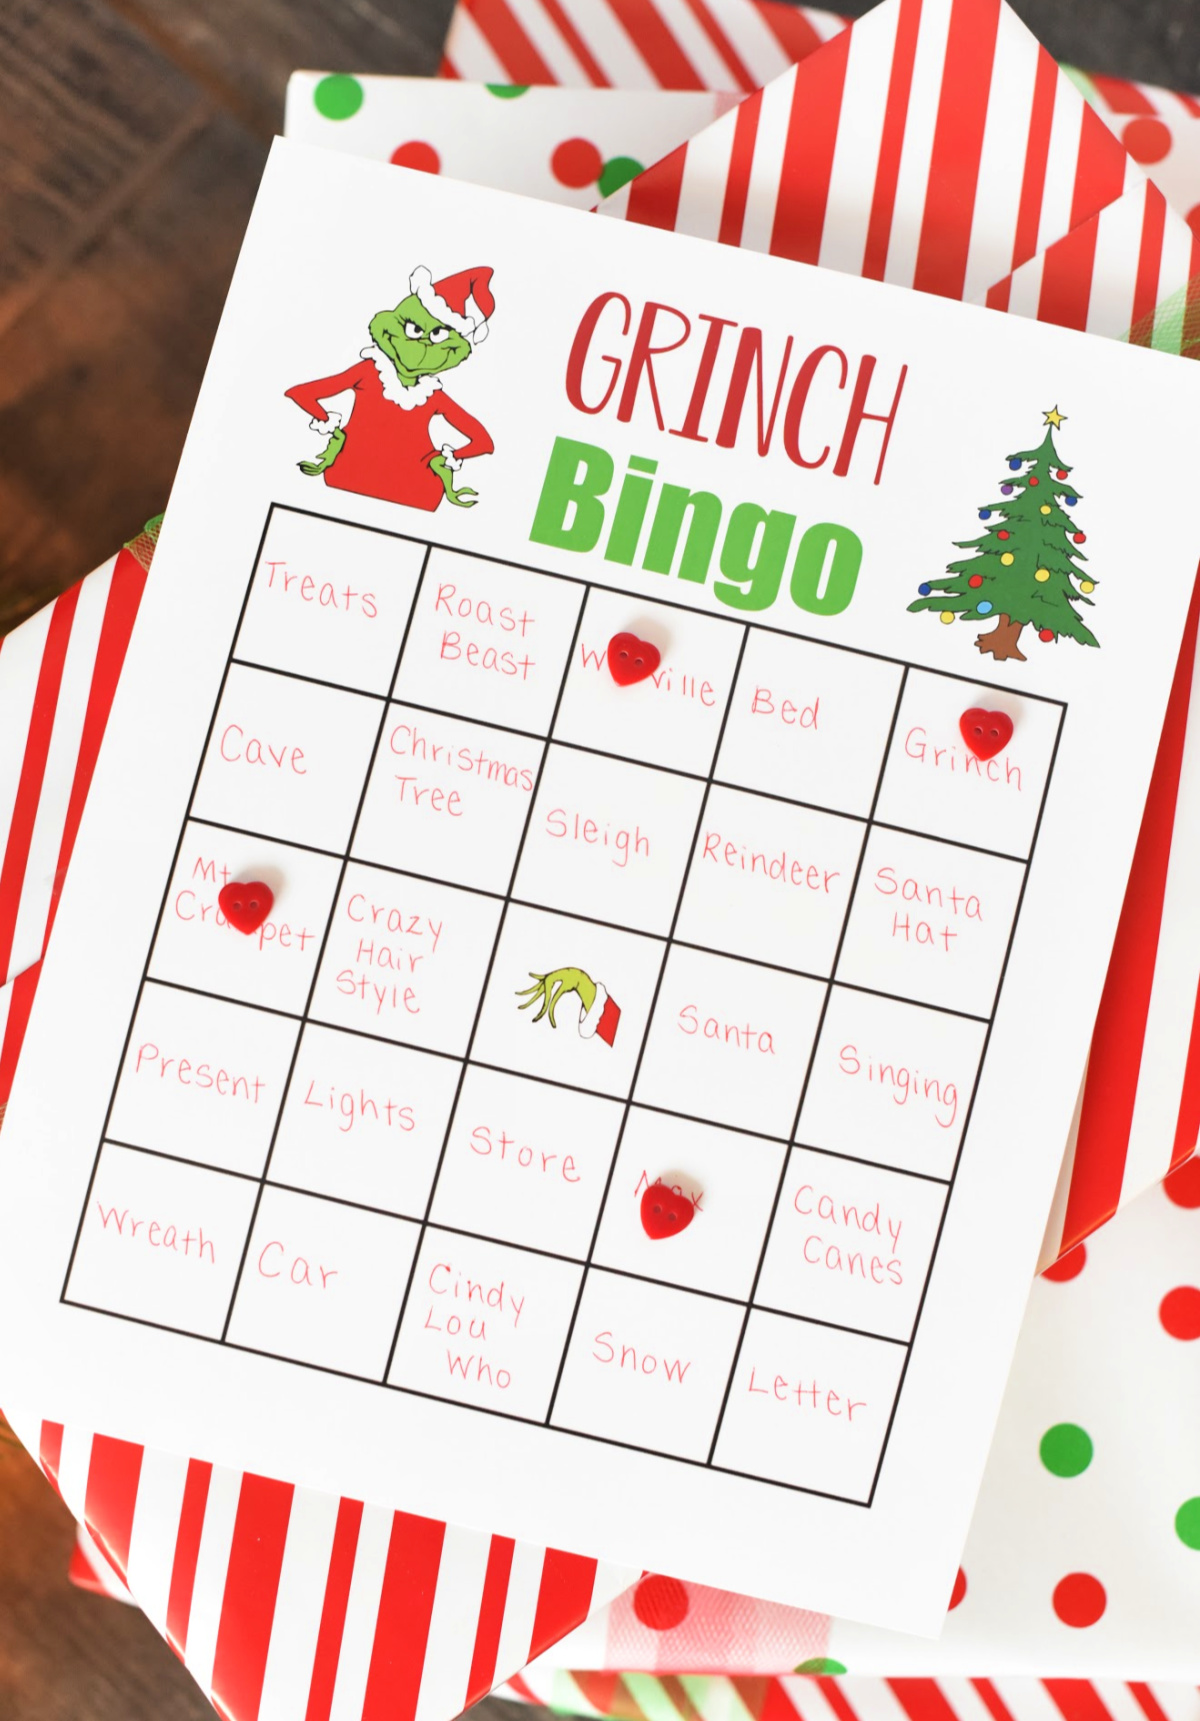 Fun Grinch Bingo